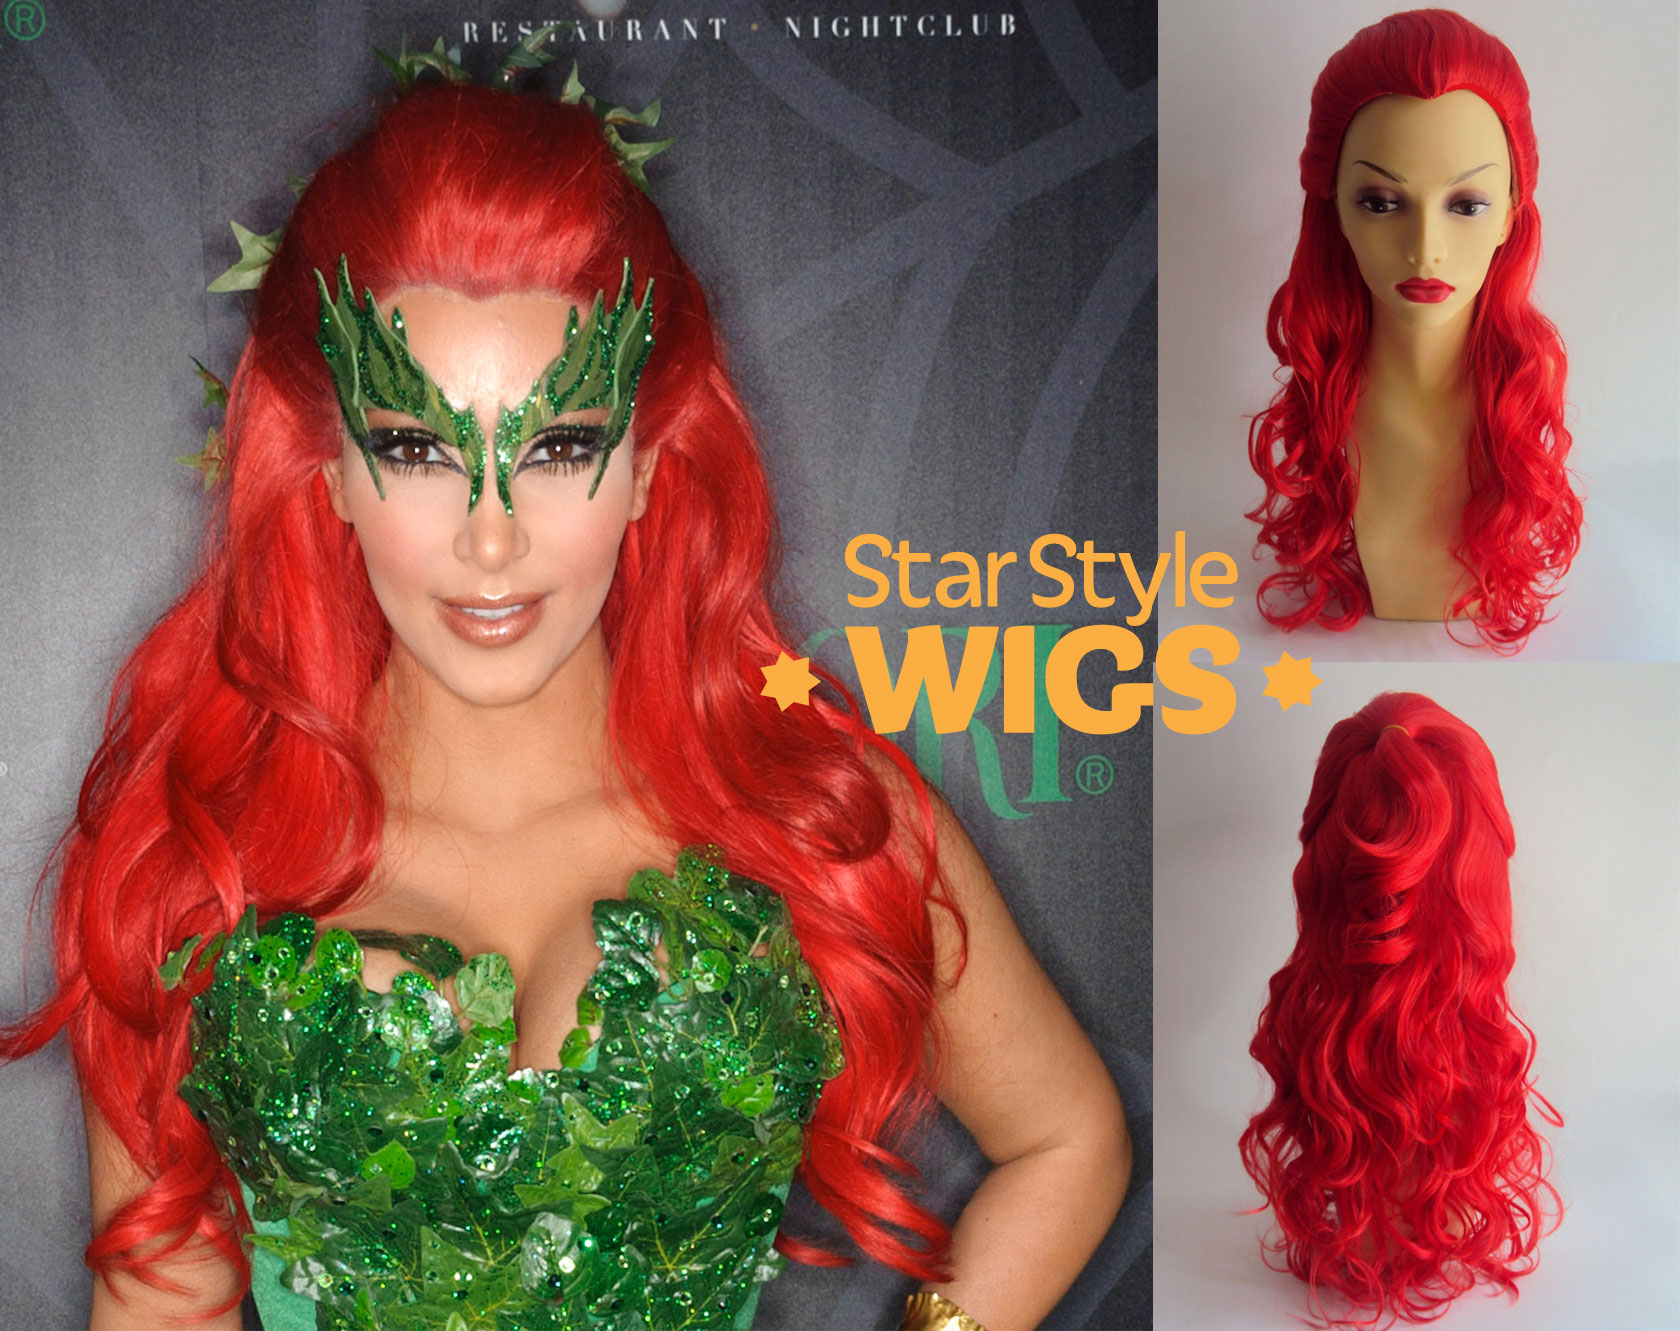 poison ivy hair style poison hair and makeup guide costume 2354 | KIM POISON IVY LOGO